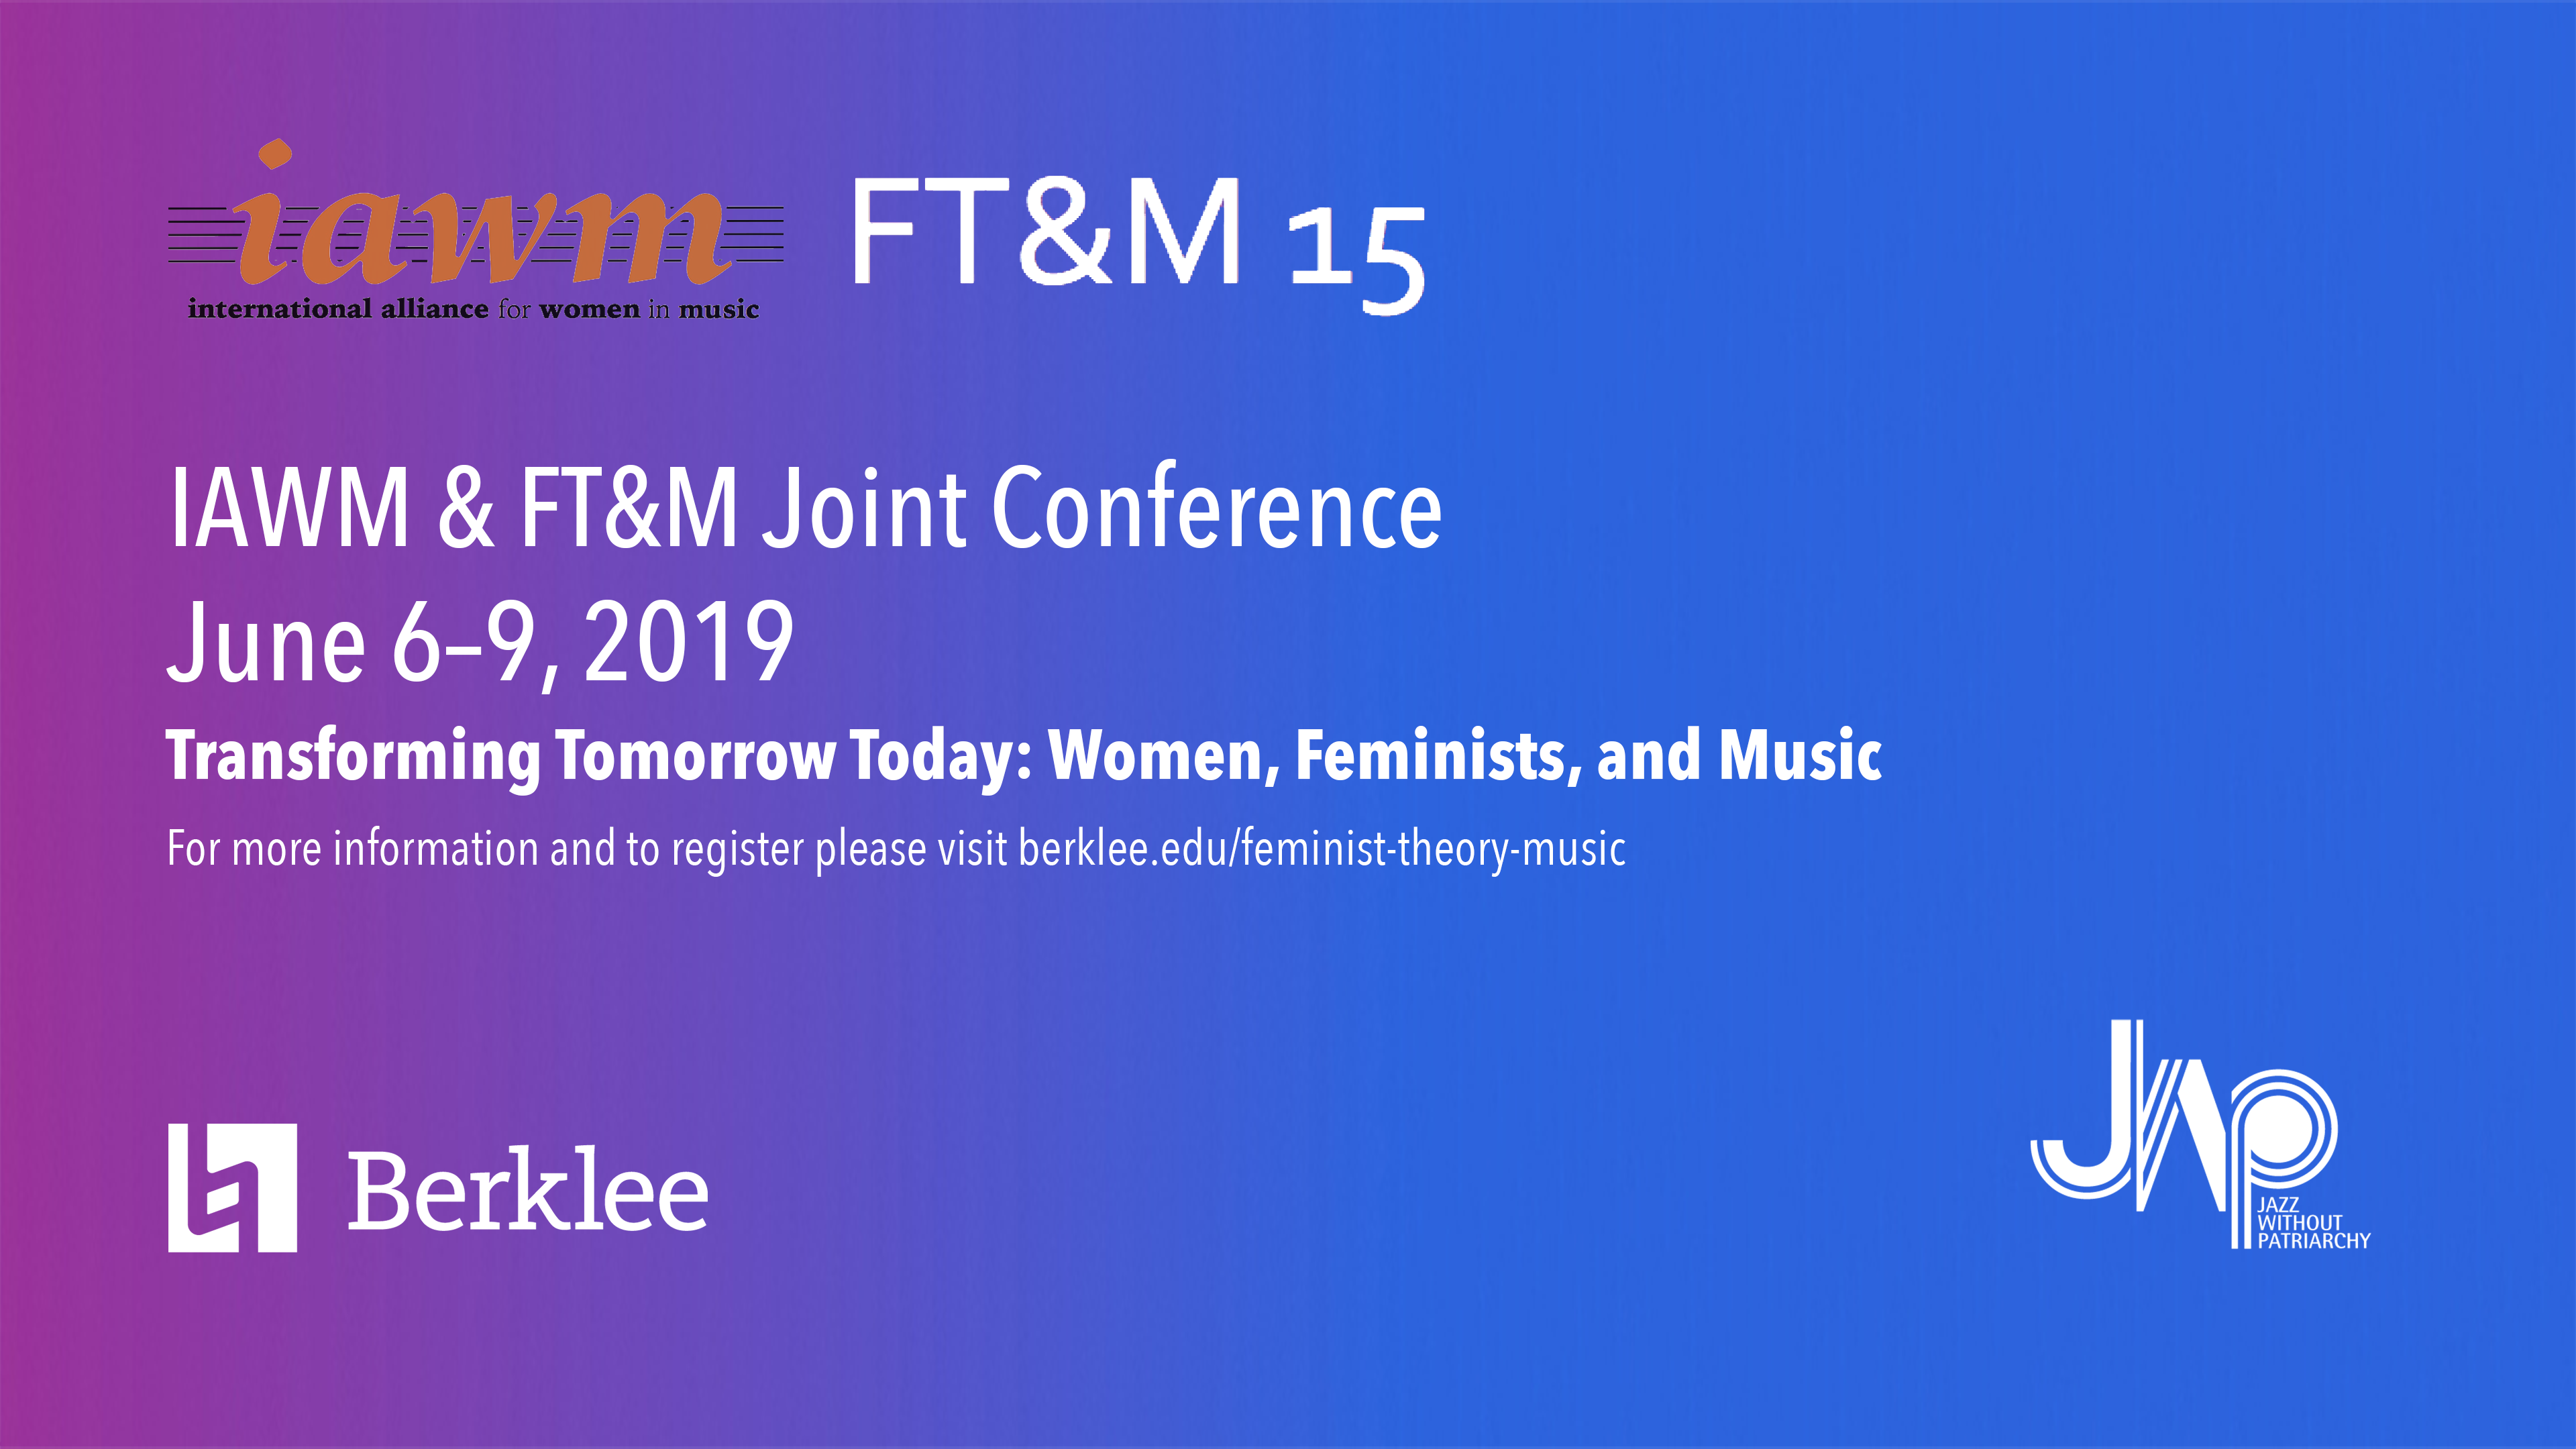 Feminist Theory Music Conference